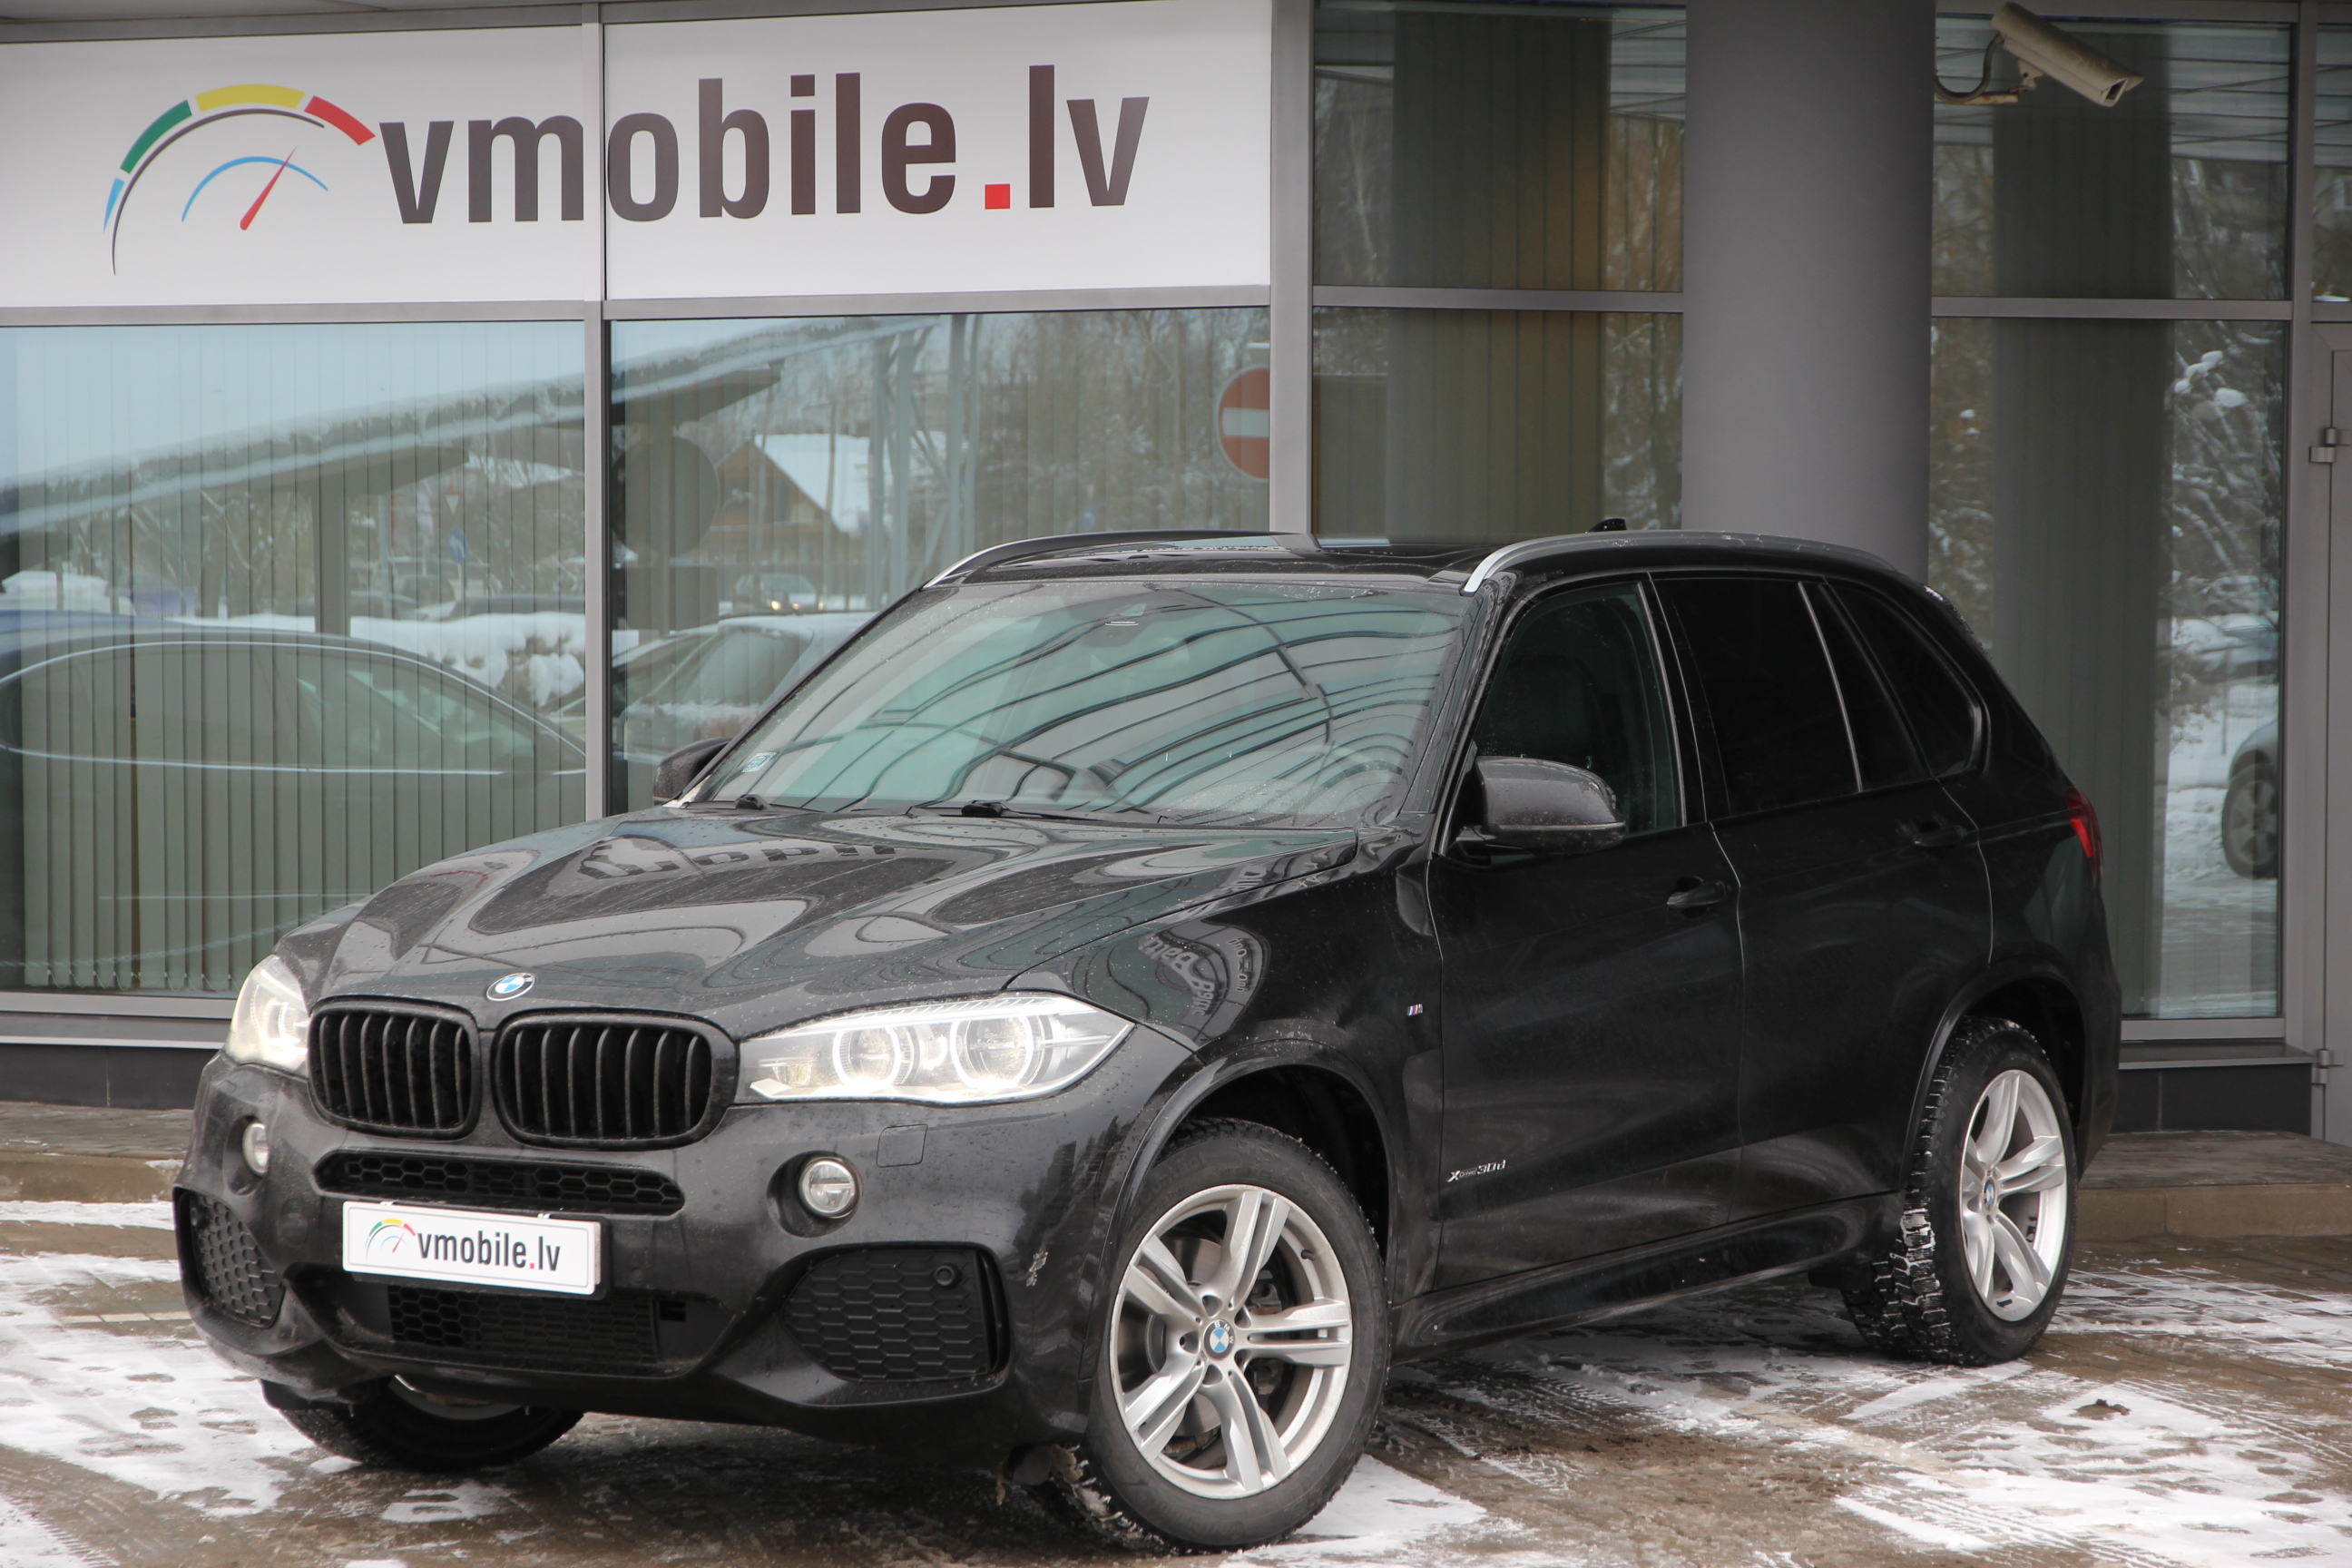 BMW X5 M SPORT PACKAGE, LED, PANORAMA, head up, keyless go, soft close, 258HP